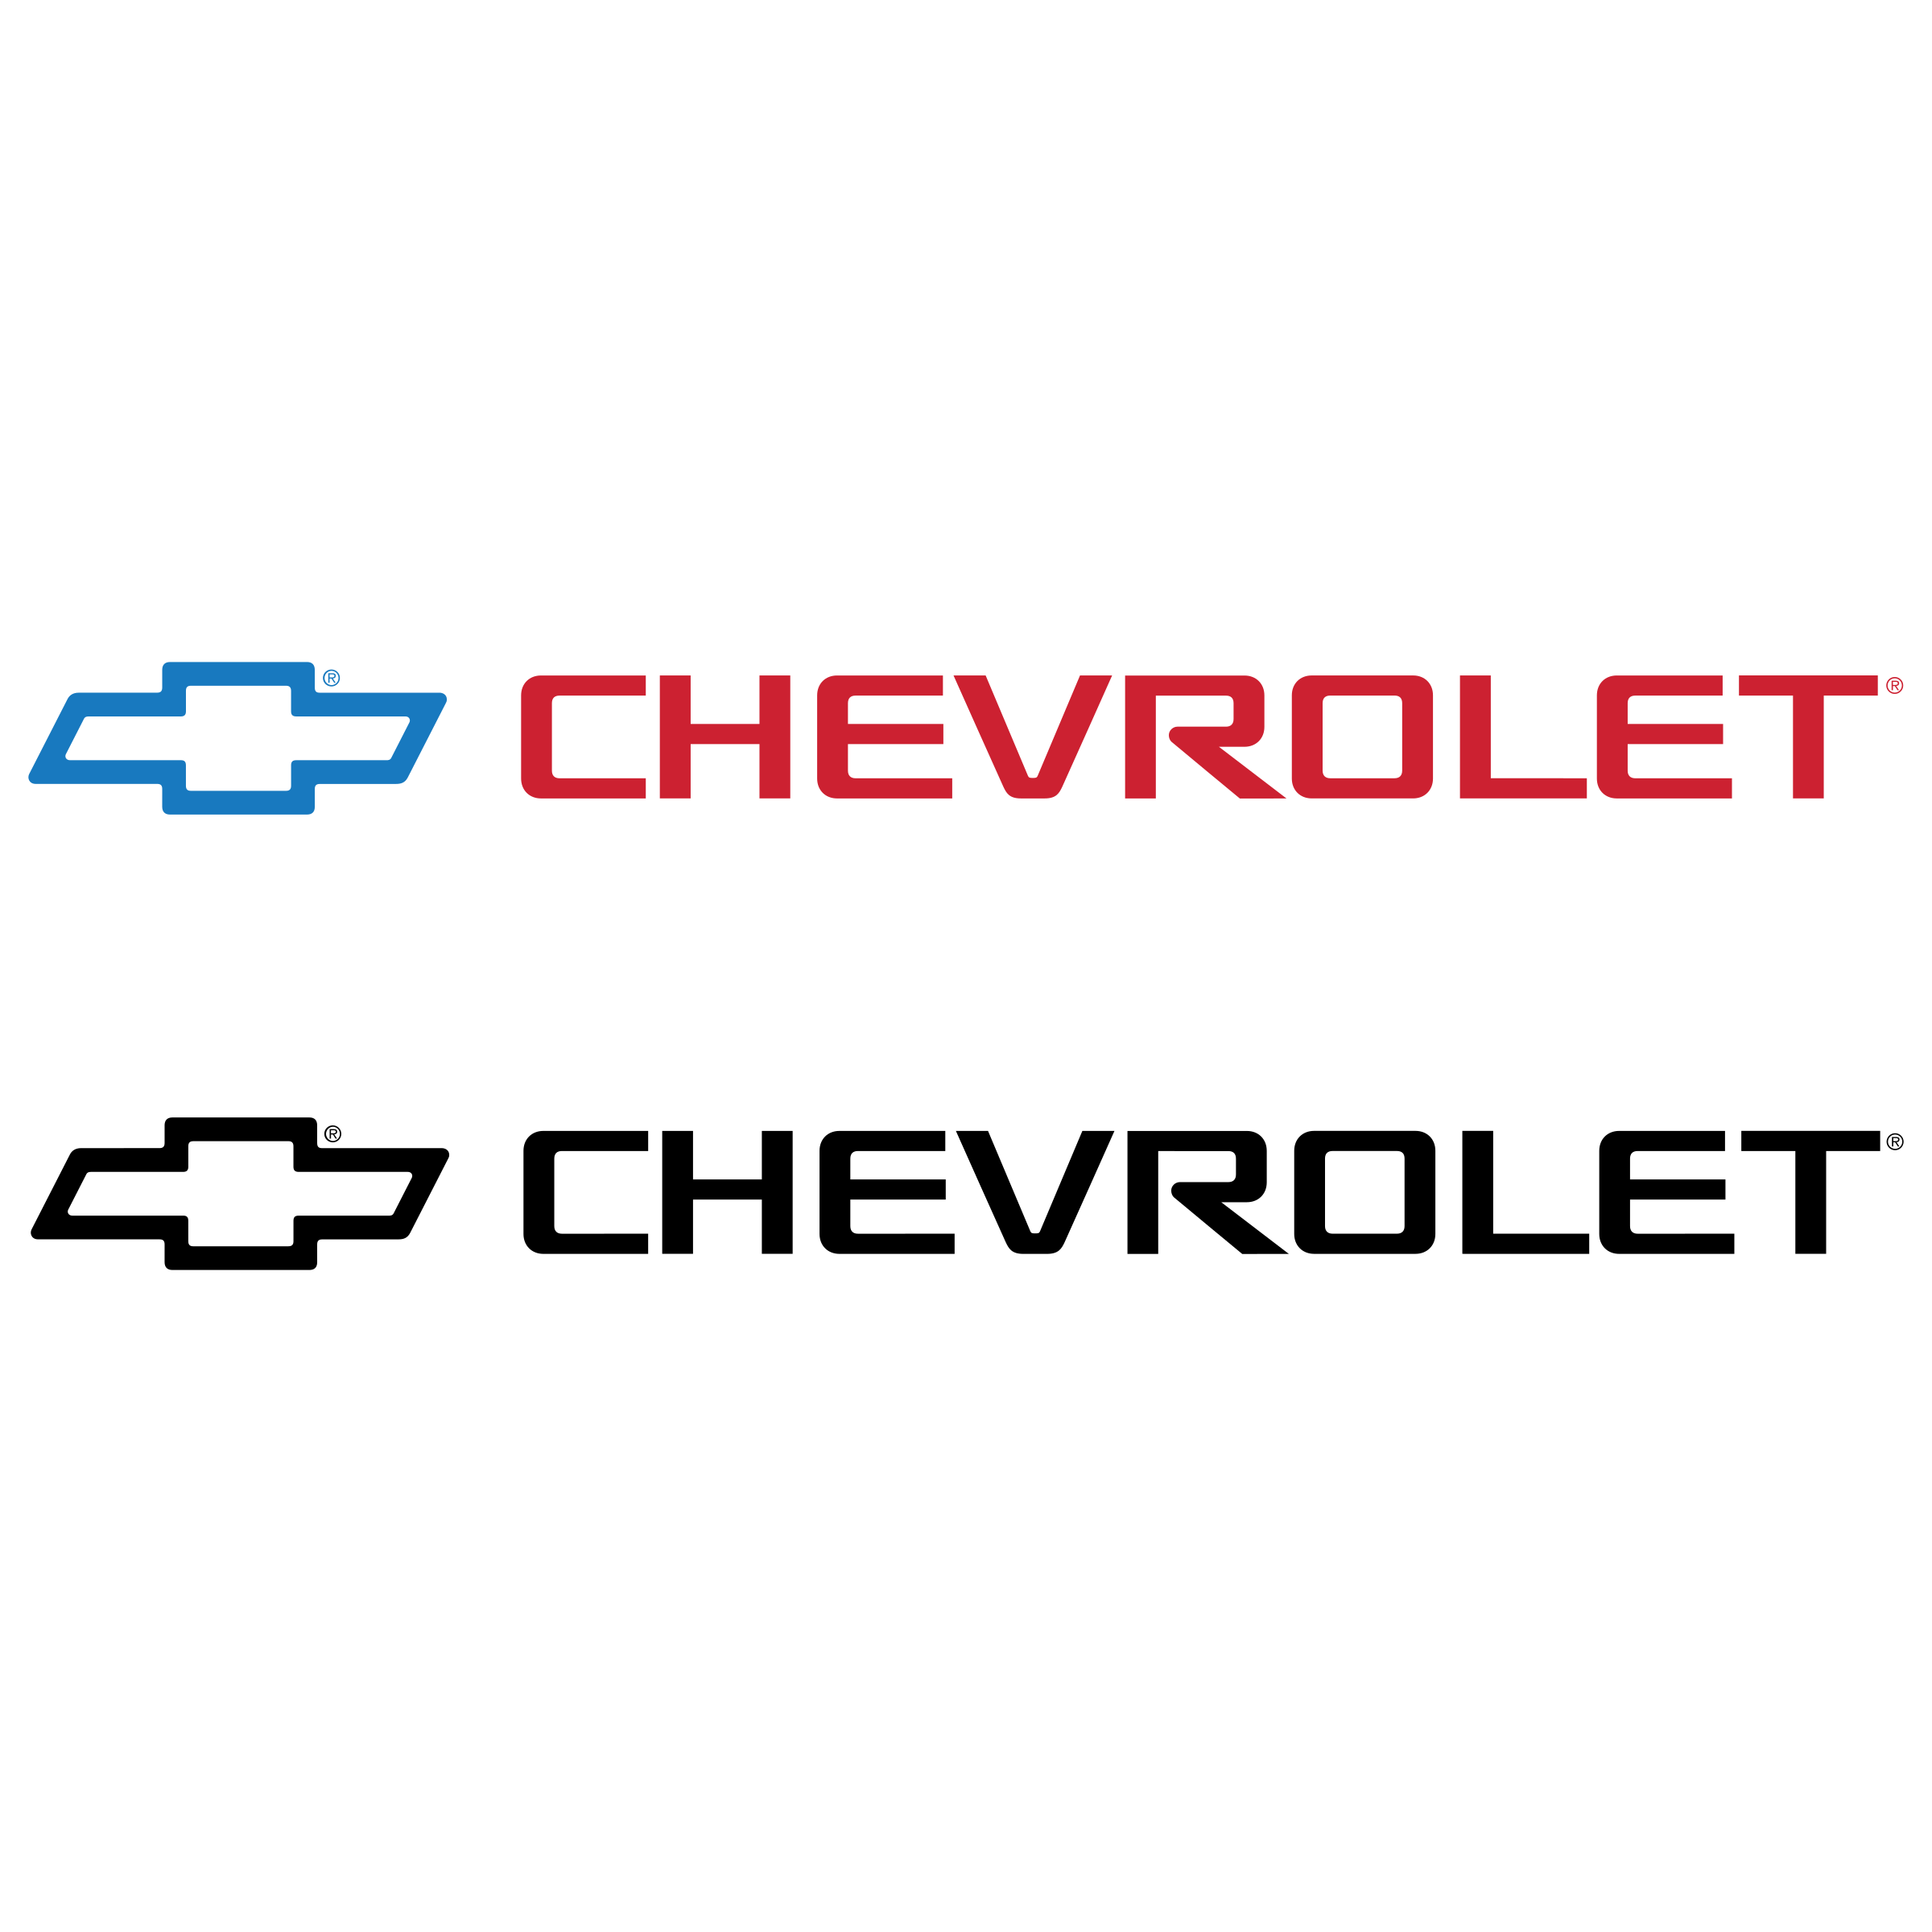 Chevrolet vector font. Logo png transparent svg